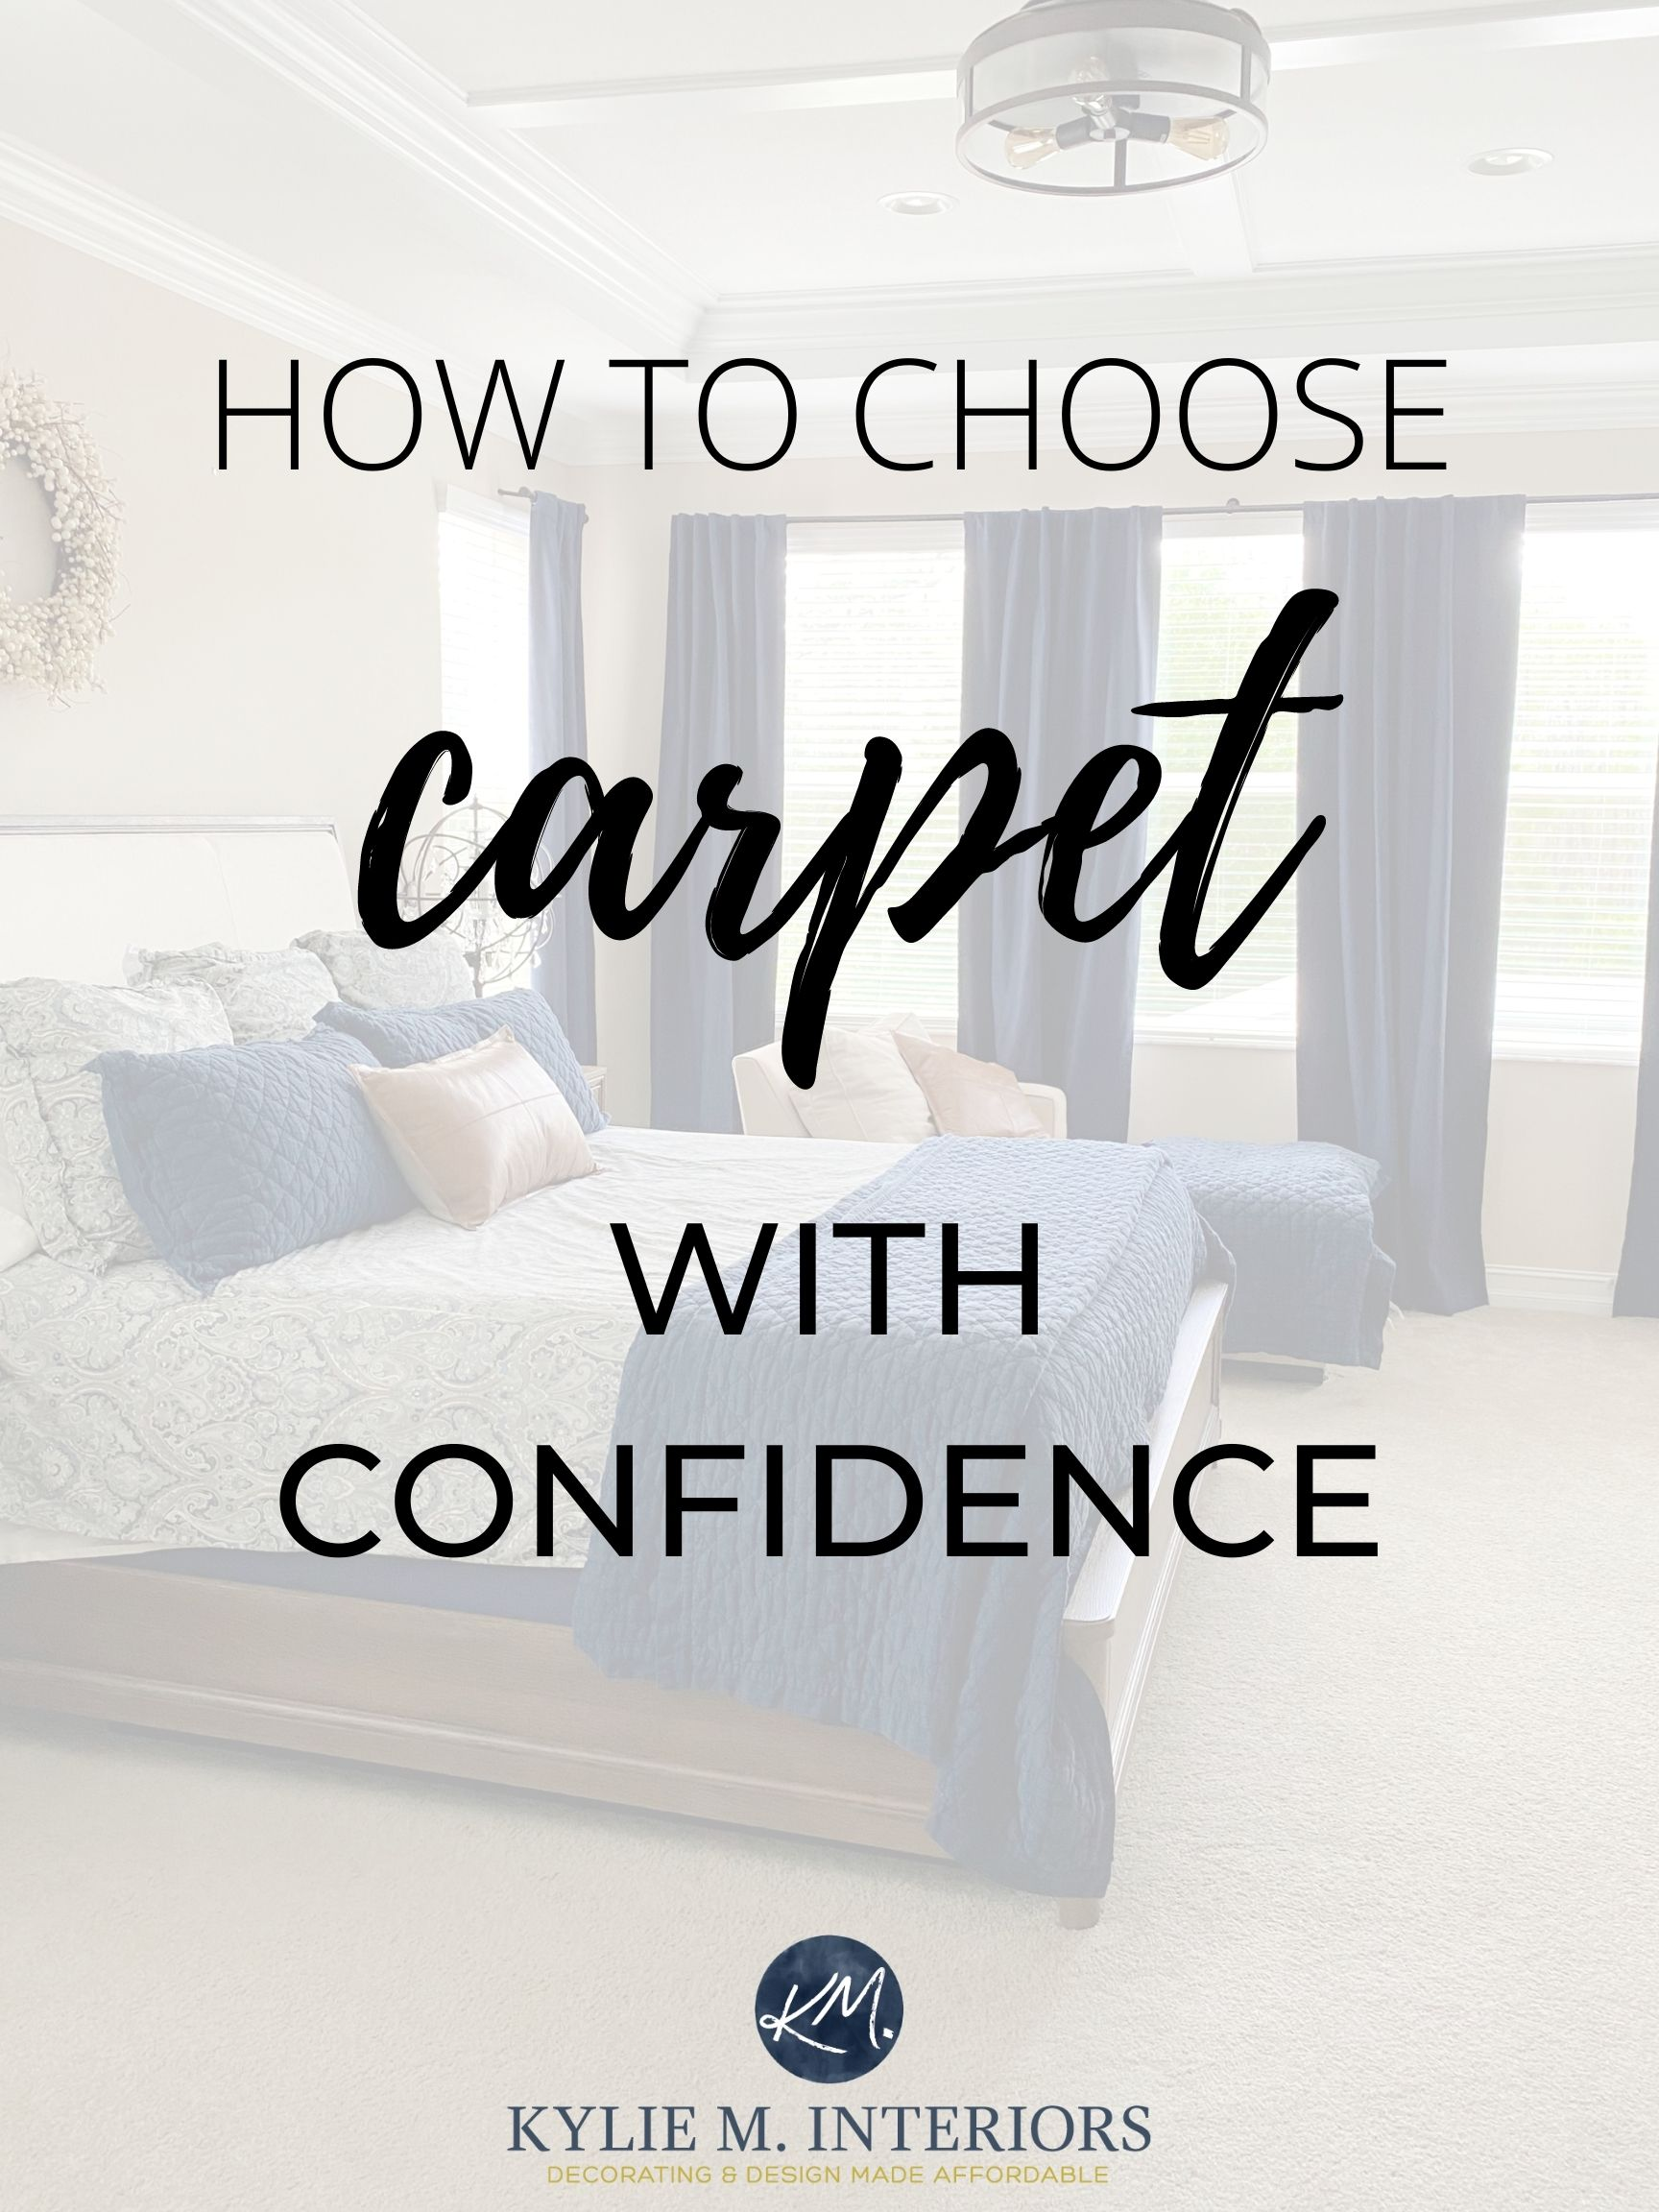 TIPS AND IDEAS TO CHOOSE THE BEST CARPET FOR YOUR ROOM. KYLIE M INTERIORS EDESIGN